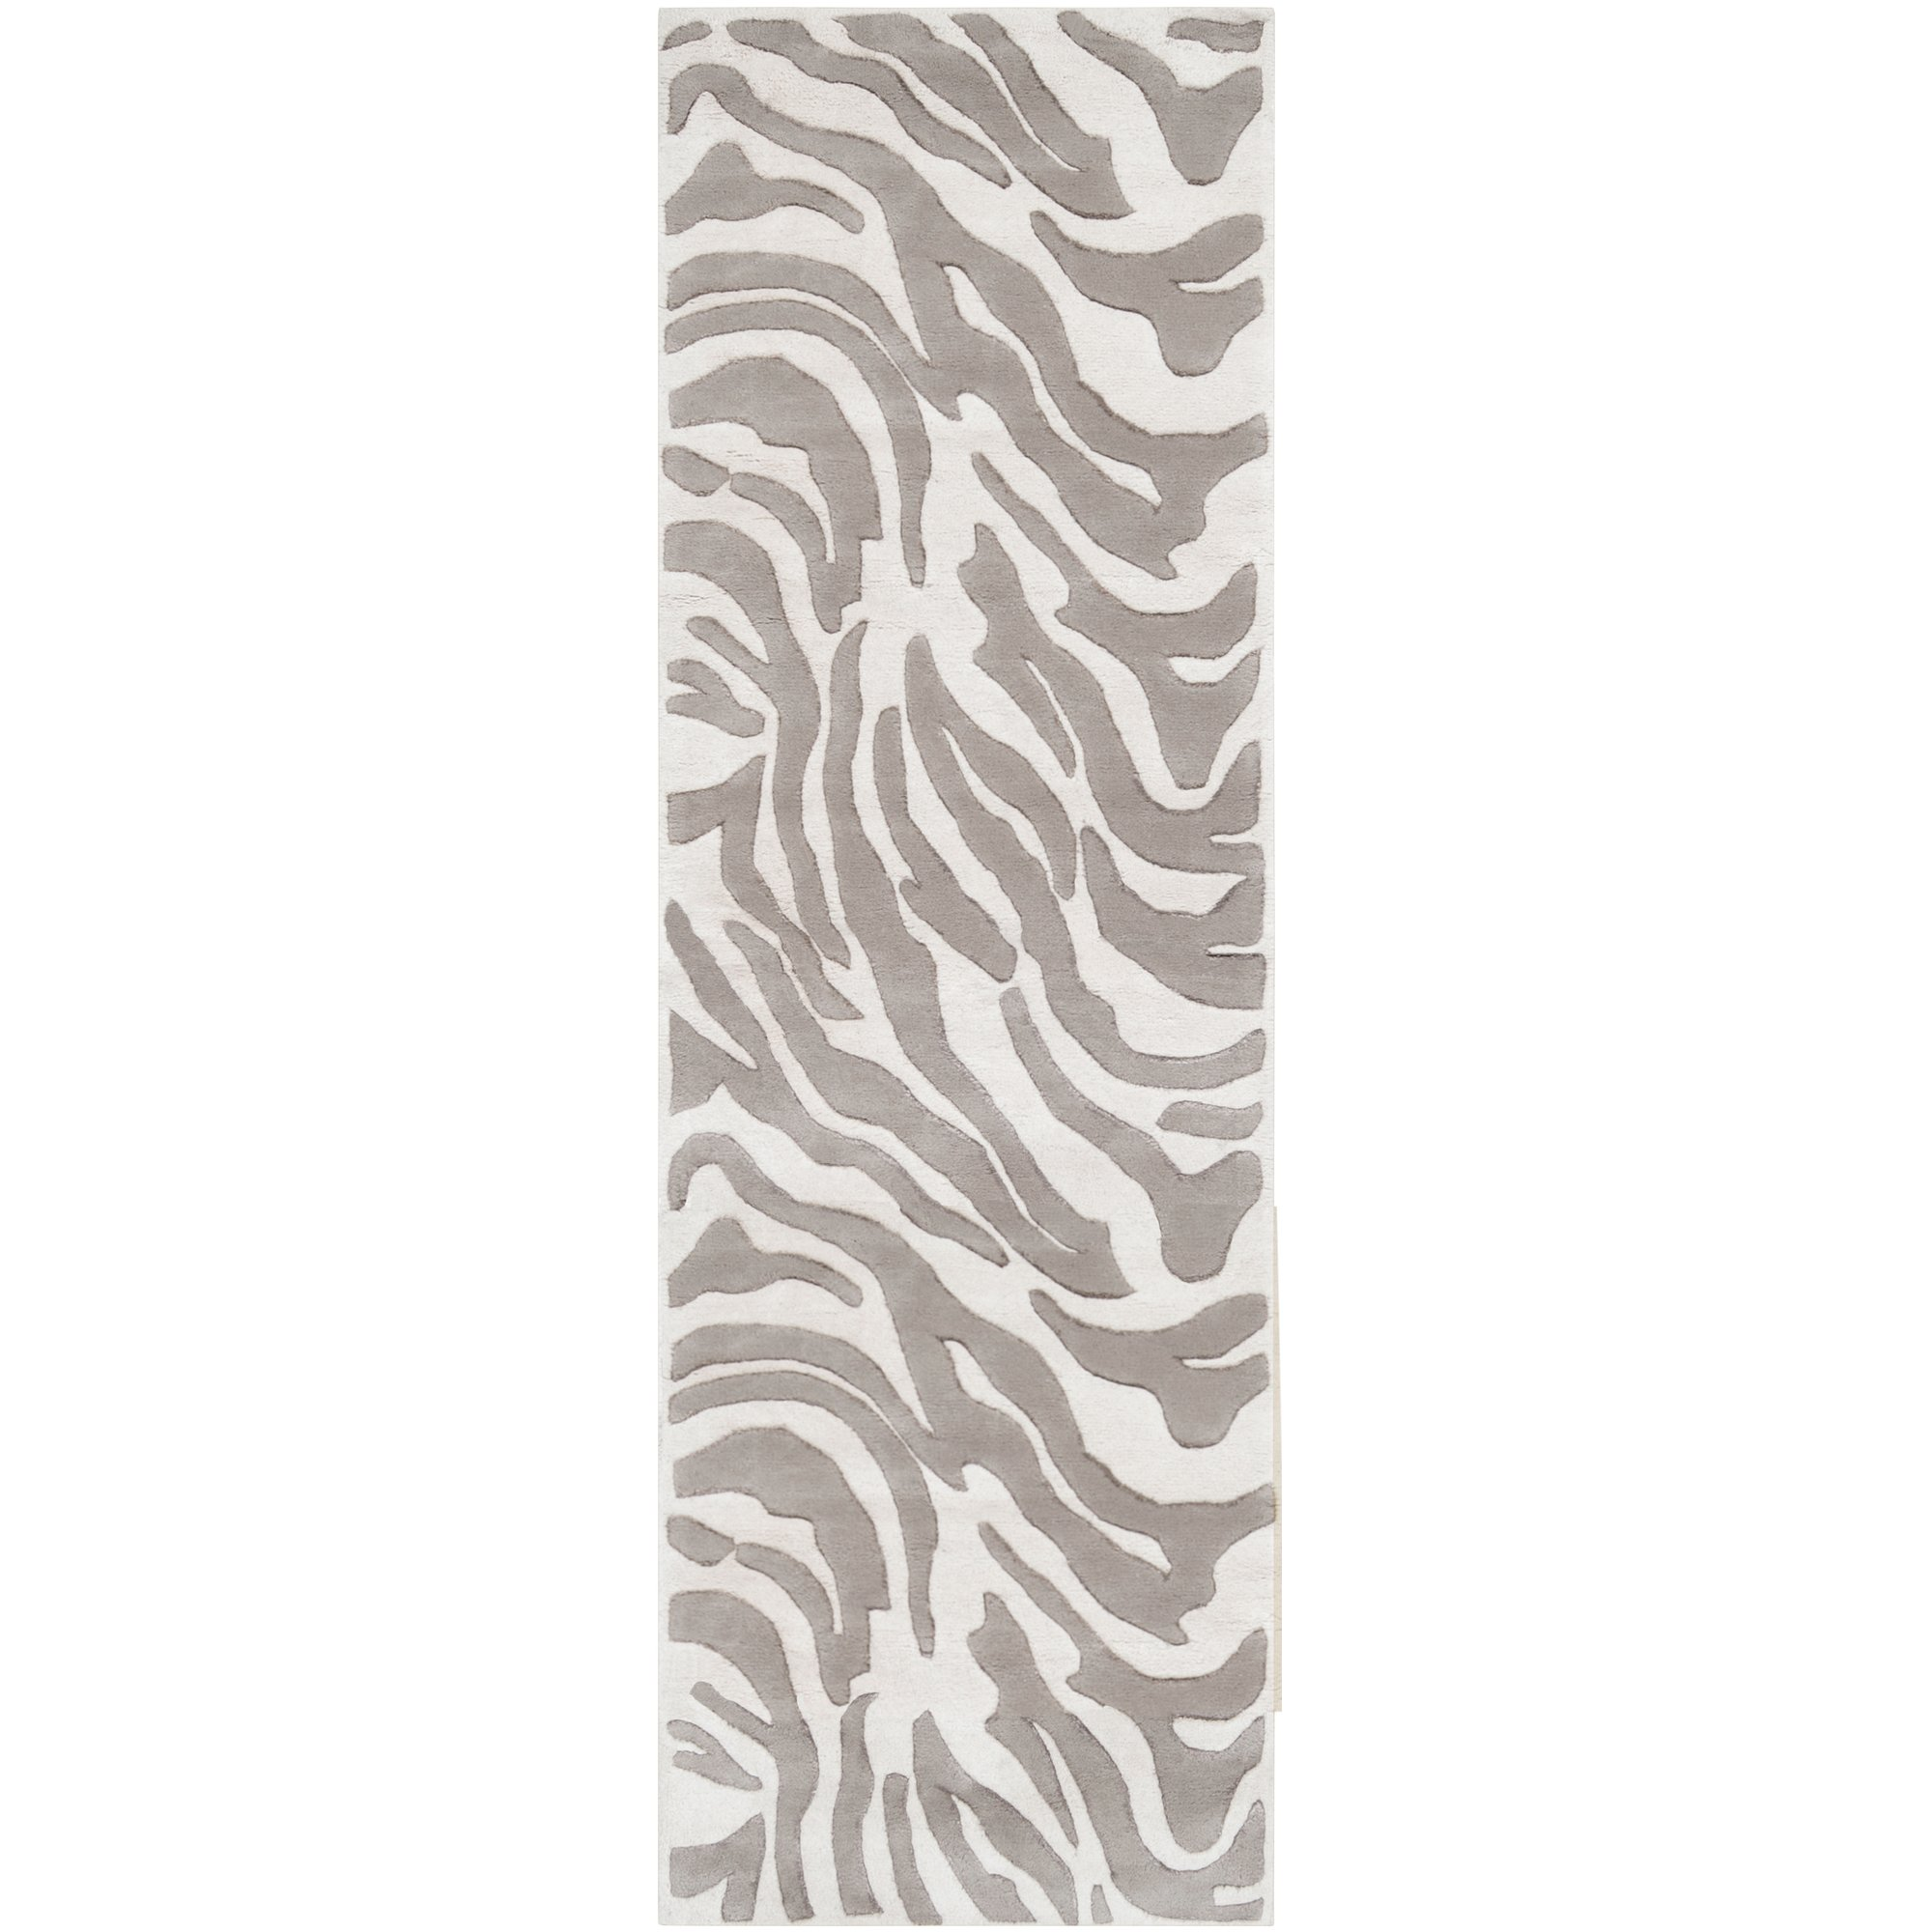 B. Smith by Surya Mosaic MOS-1001 Contemporary Hand Tufted 100% New Zealand Wool Ivory 2'6'' x 8' Animal Runner